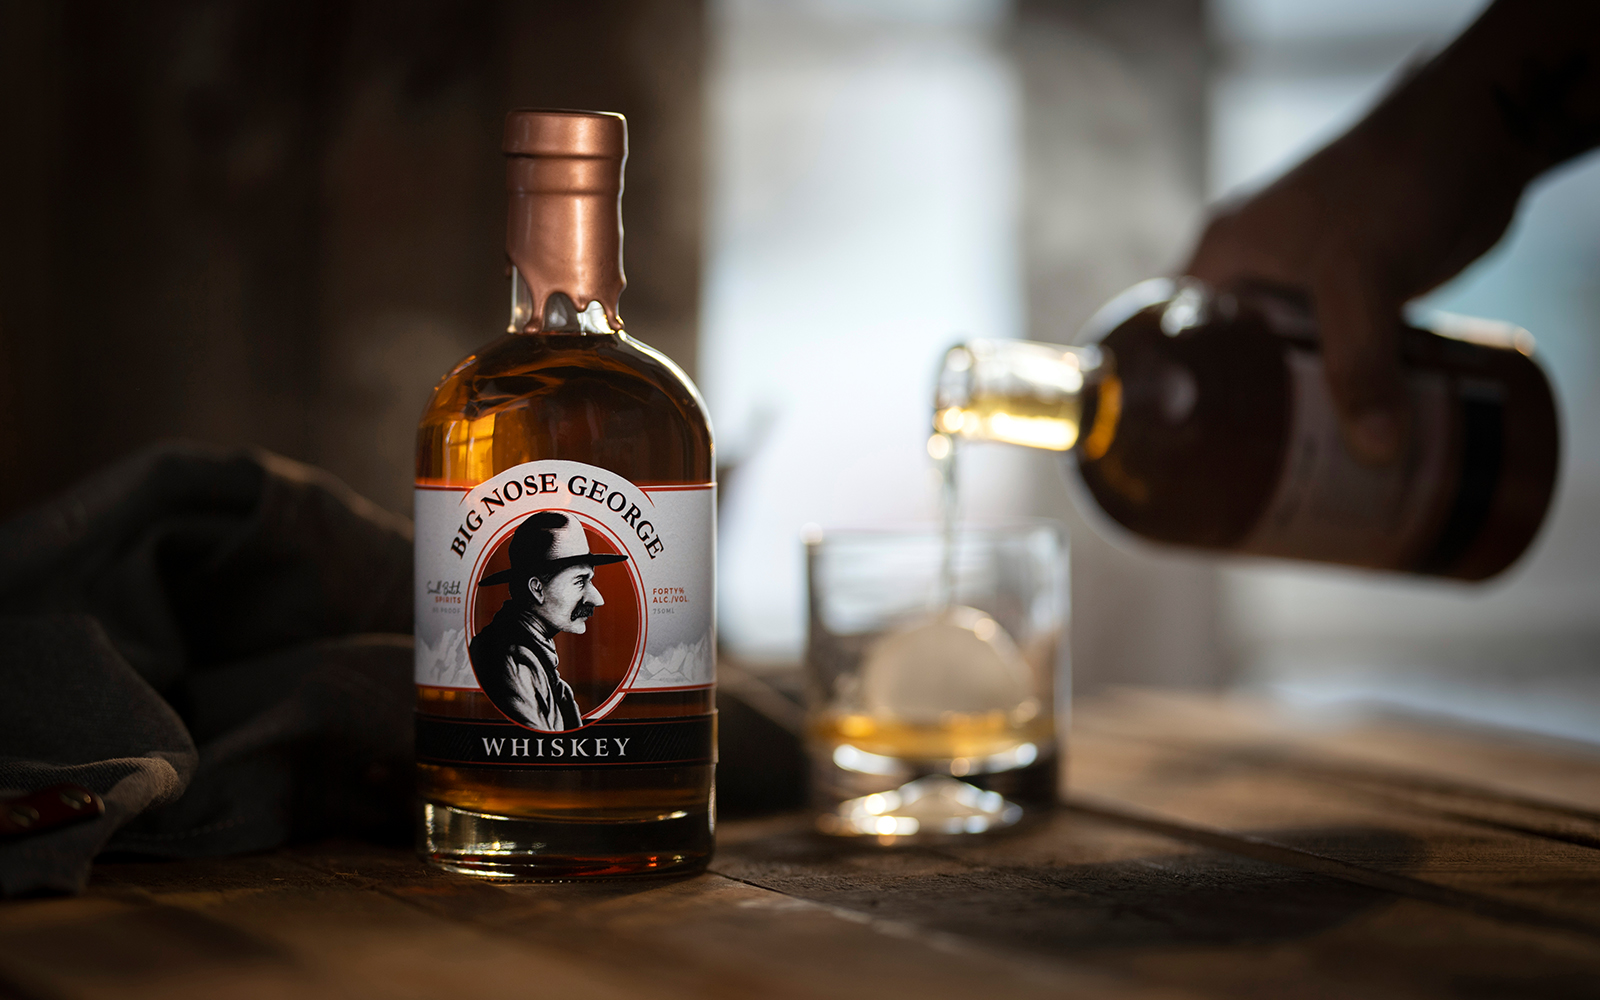 A bottle of the Big Nose George Whisky from the Brush Creek Distillery being served in a glass with ice